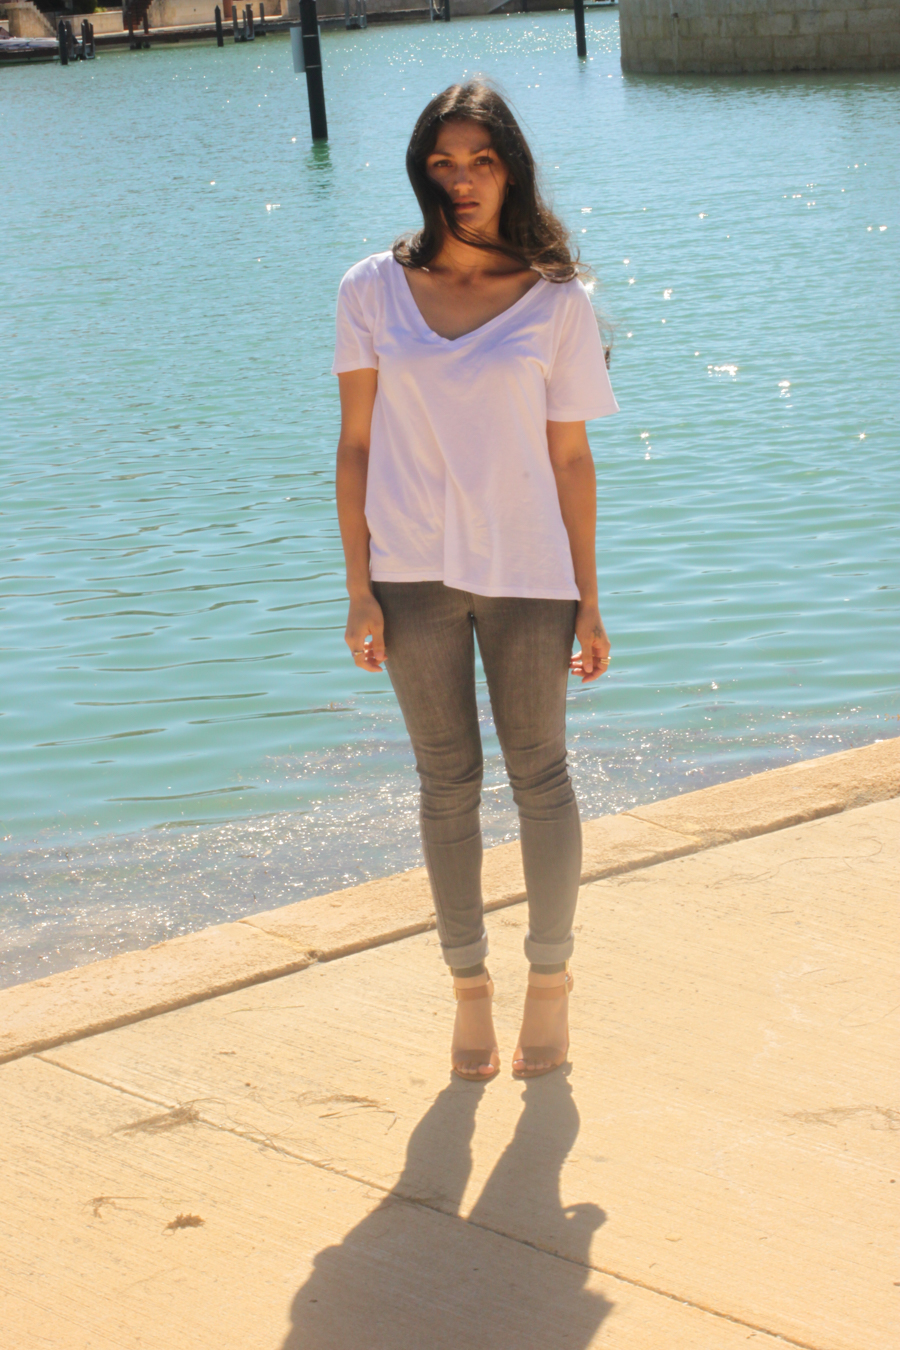 White v-neck top with jeggings.